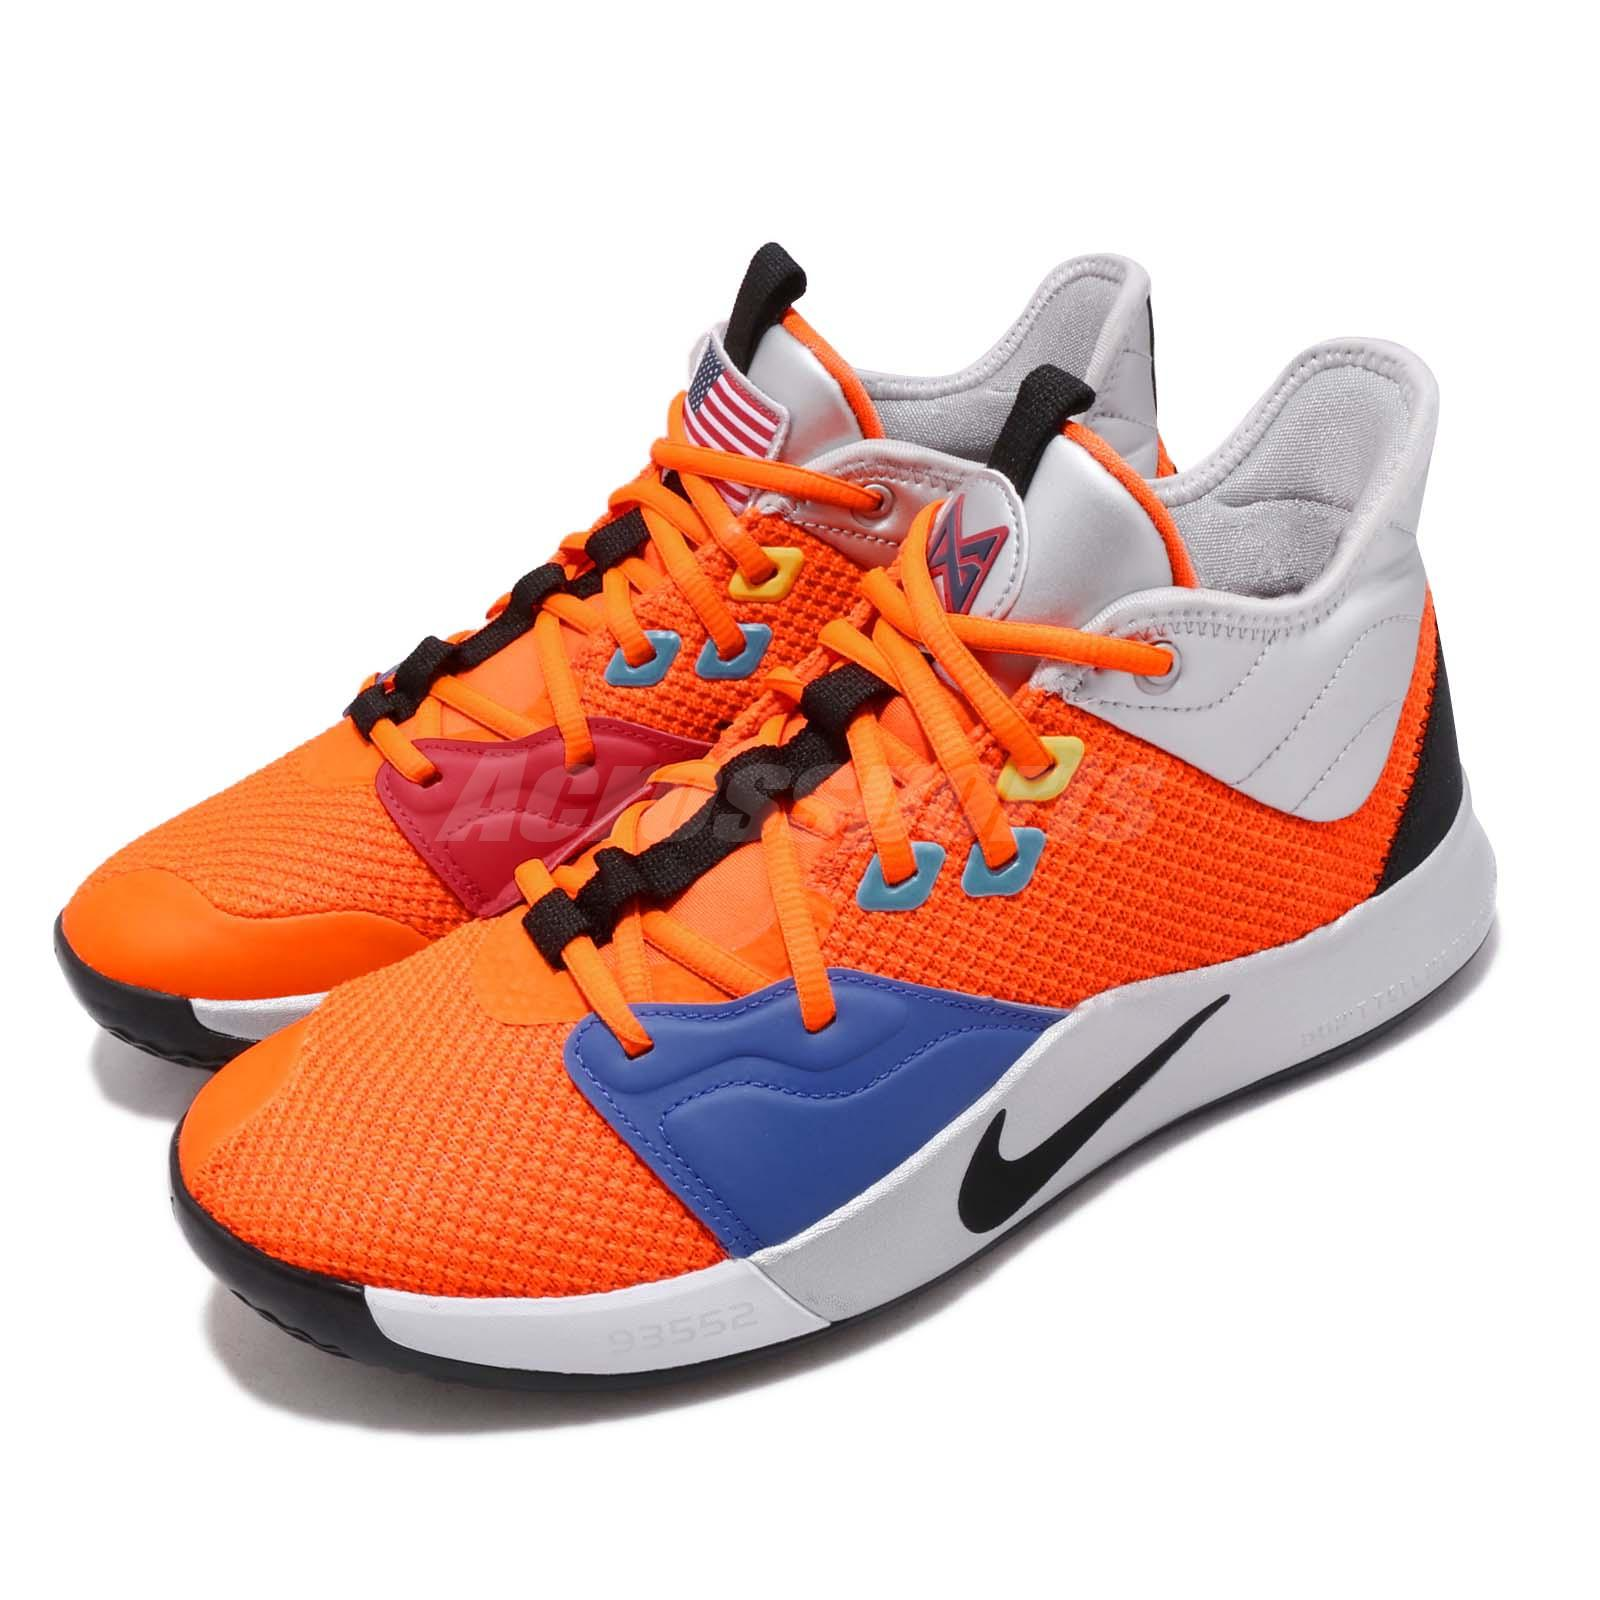 nasa paul george shoes Kevin Durant